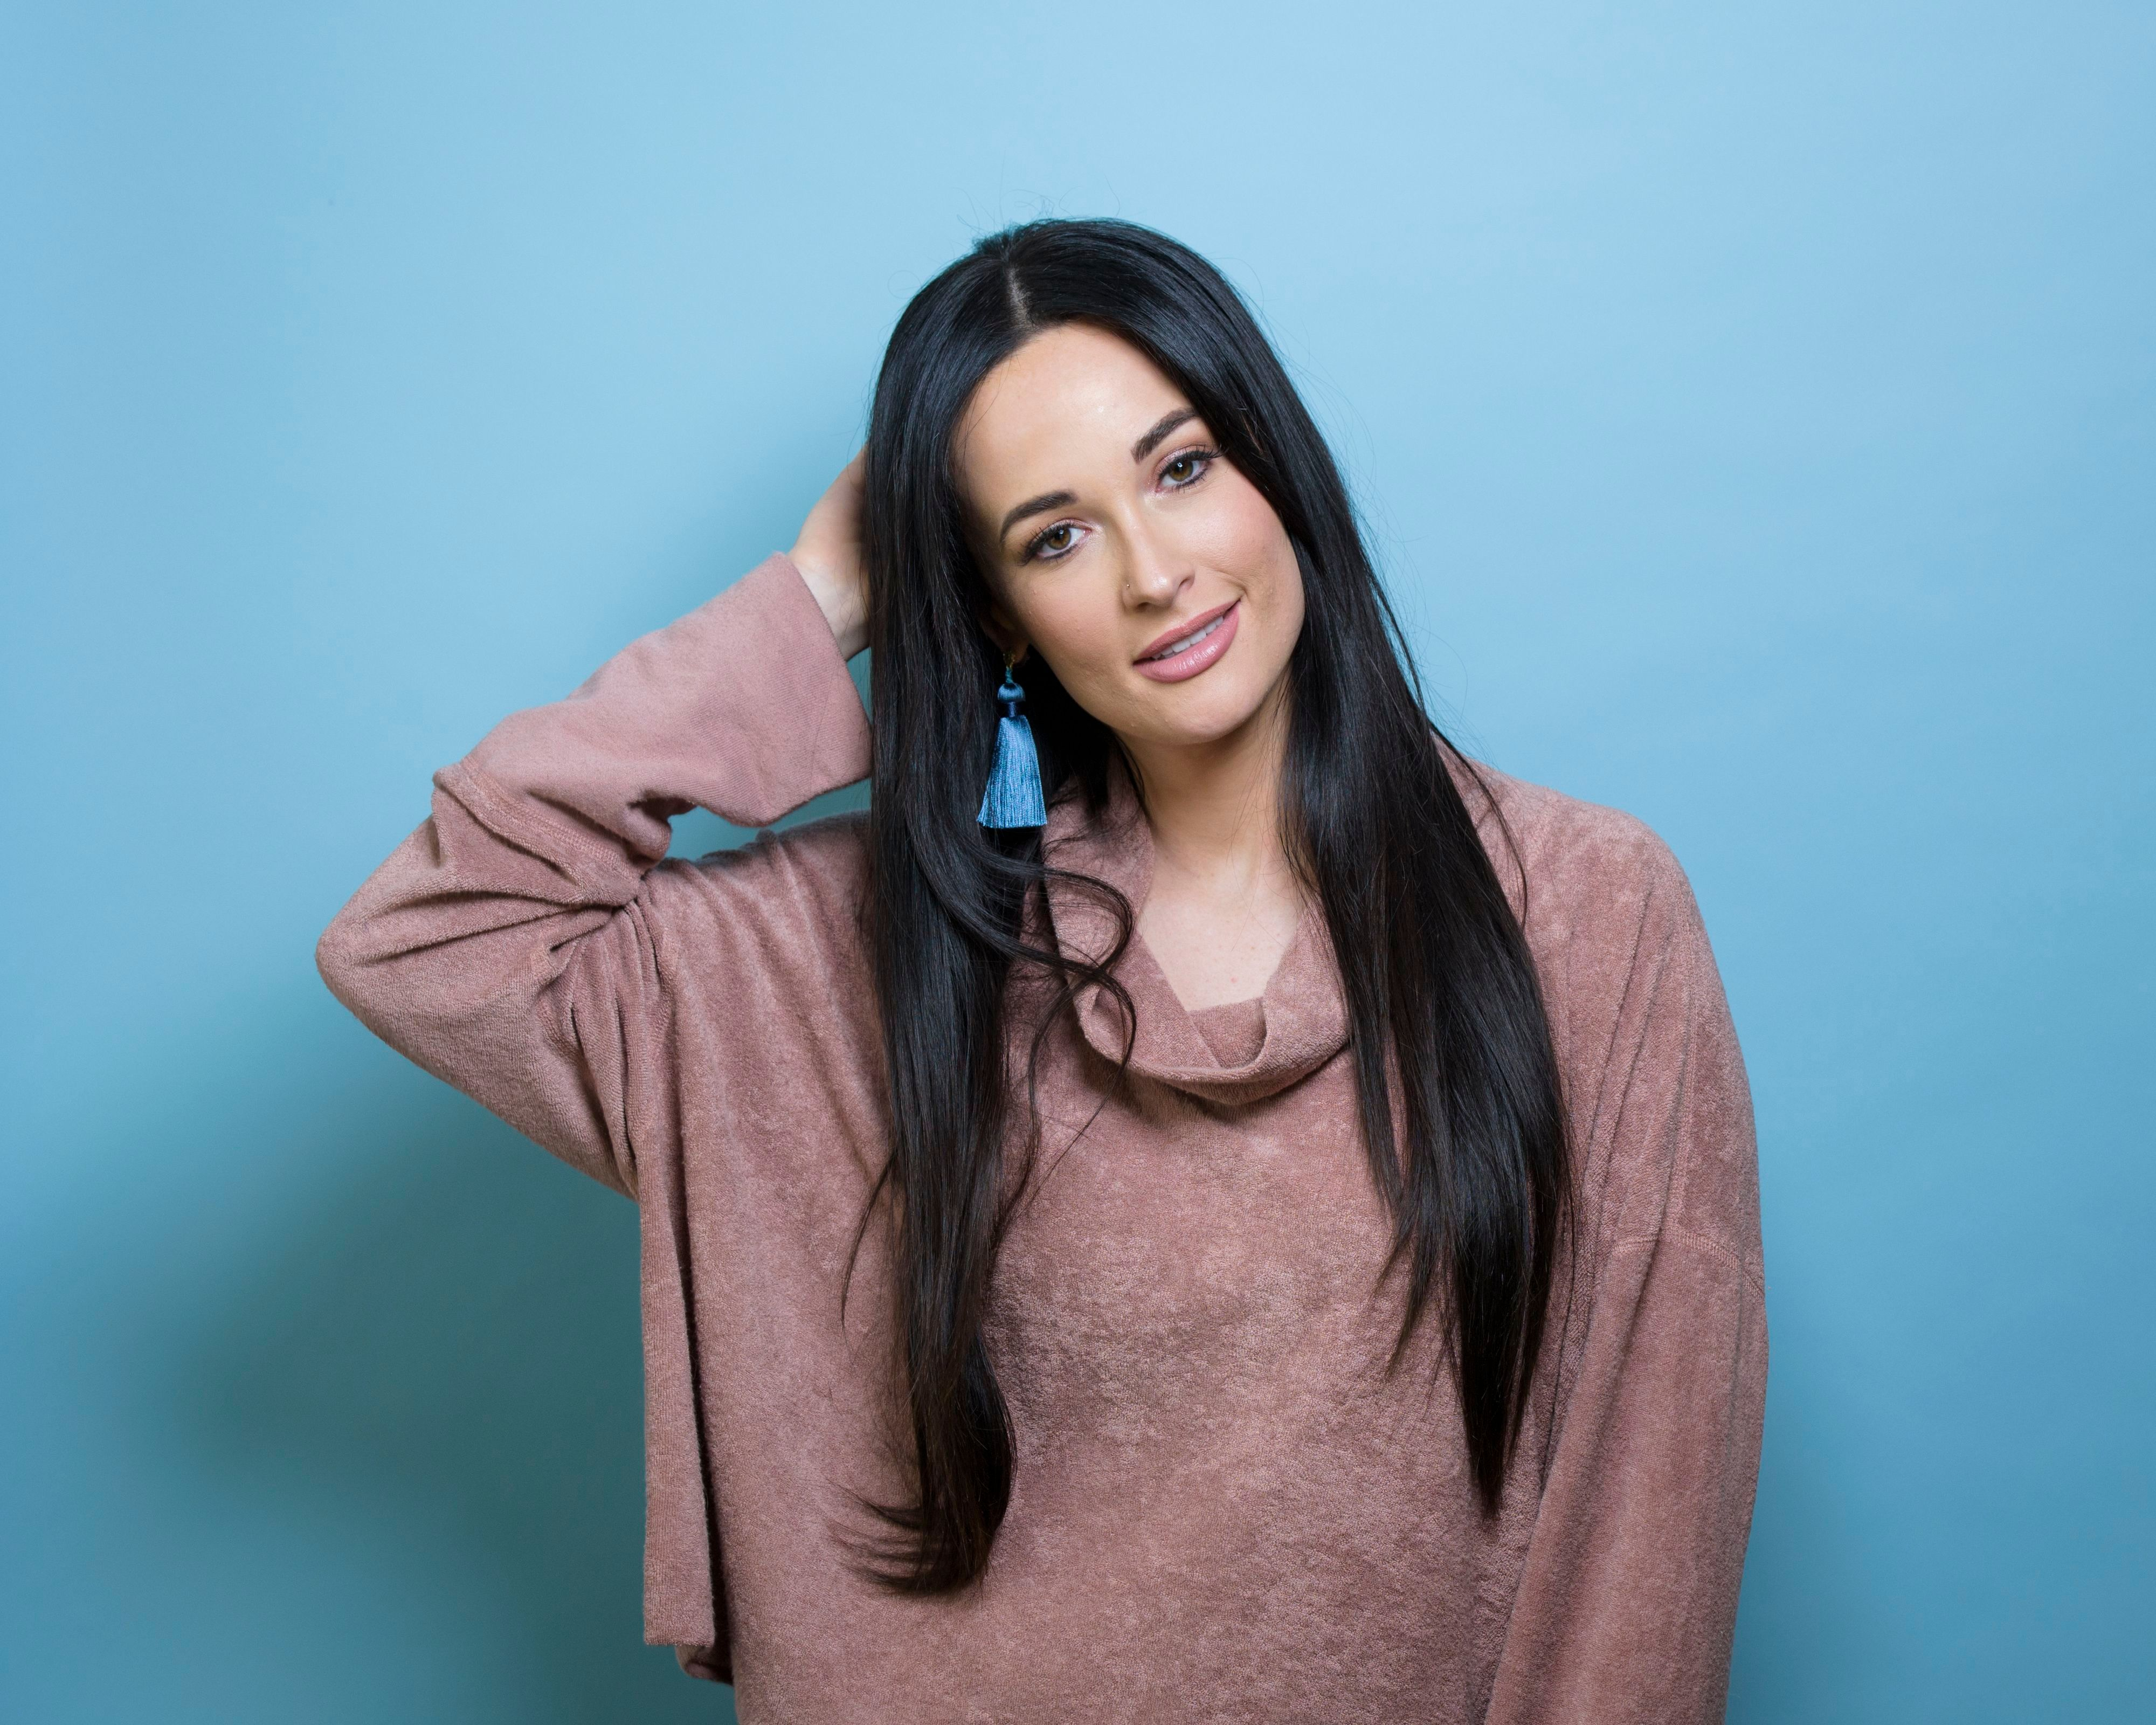 Kacey Musgraves Talks Acid Trips, Touring With Harry Styles